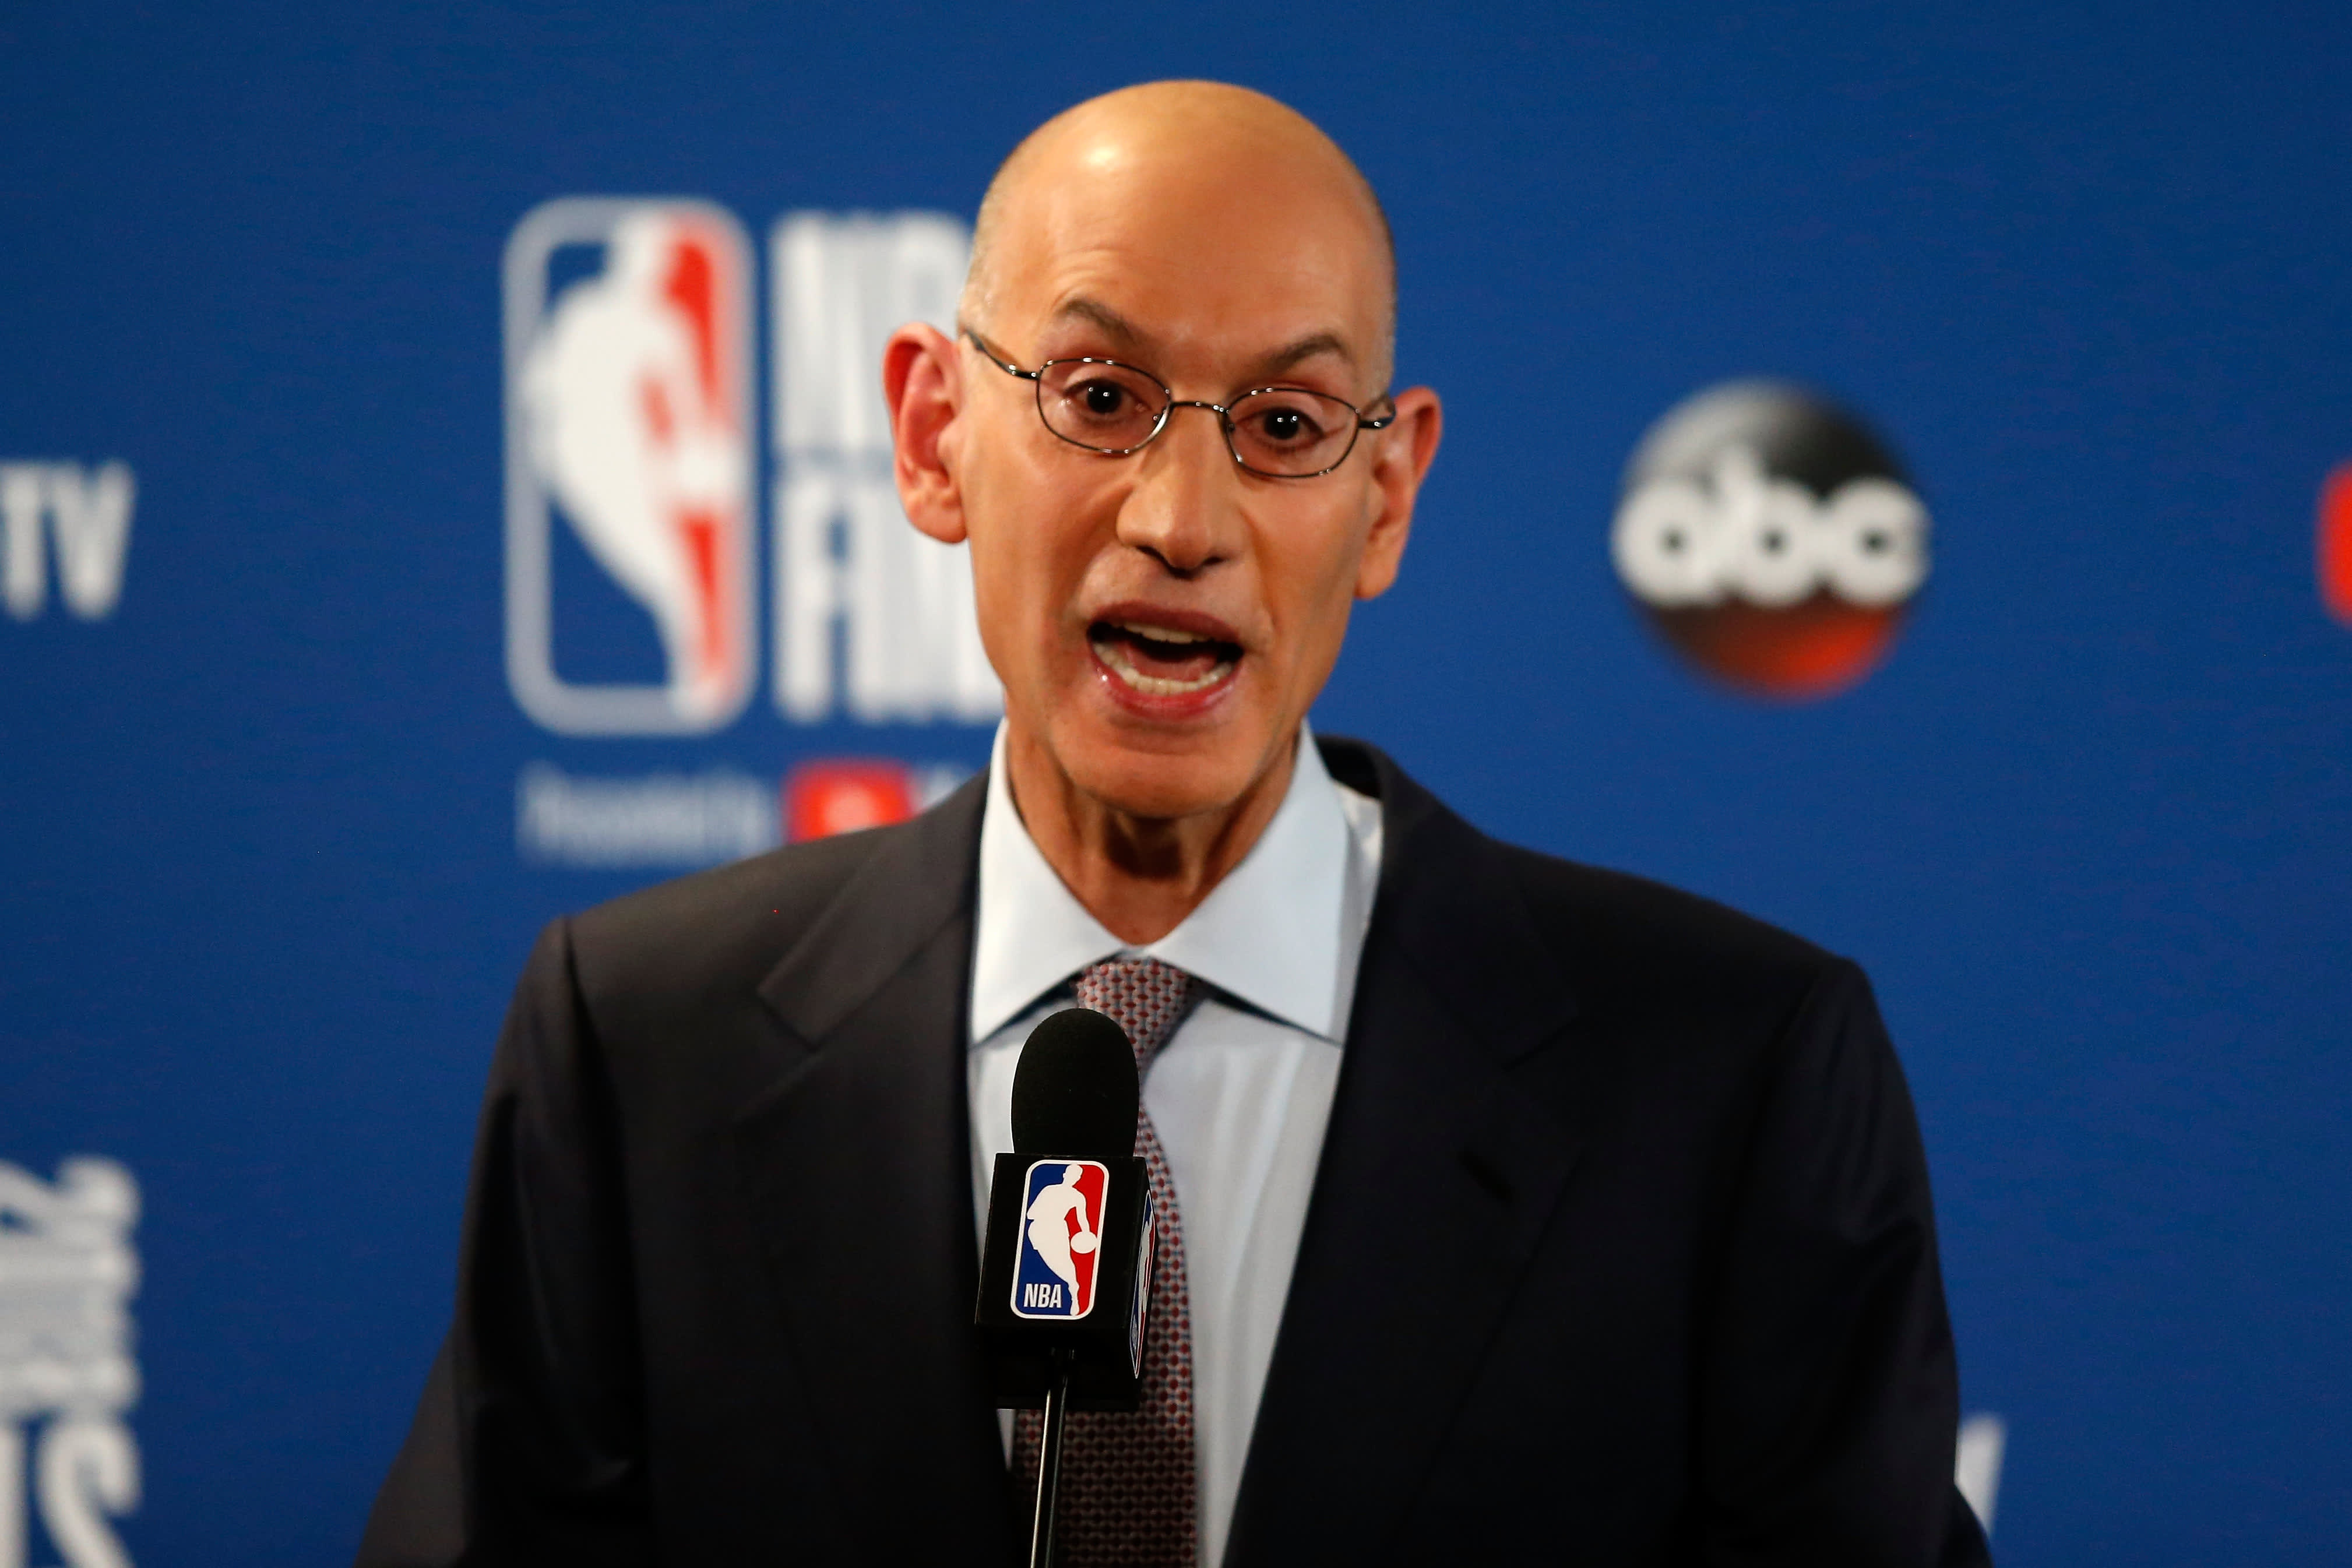 Adam Silver says NBA won't compromise its values, to discuss situation in China visit